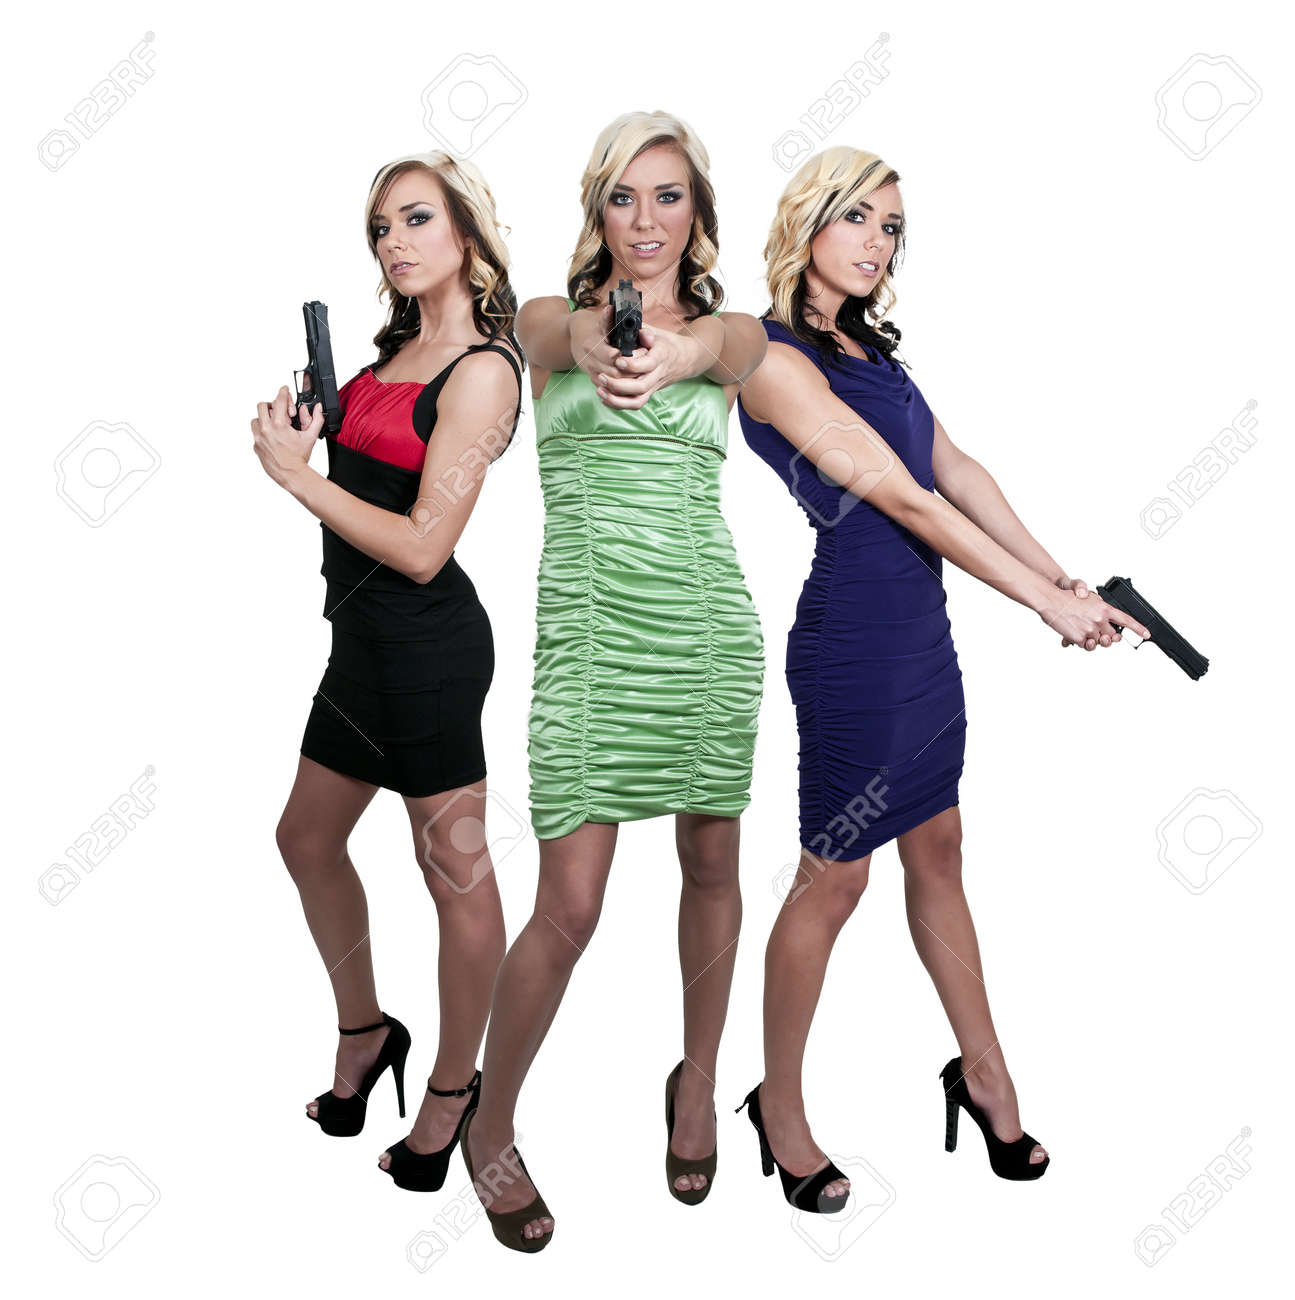 beautiful police detective women on the job guns stock photo beautiful police detective women on the job guns stock photo 14880502